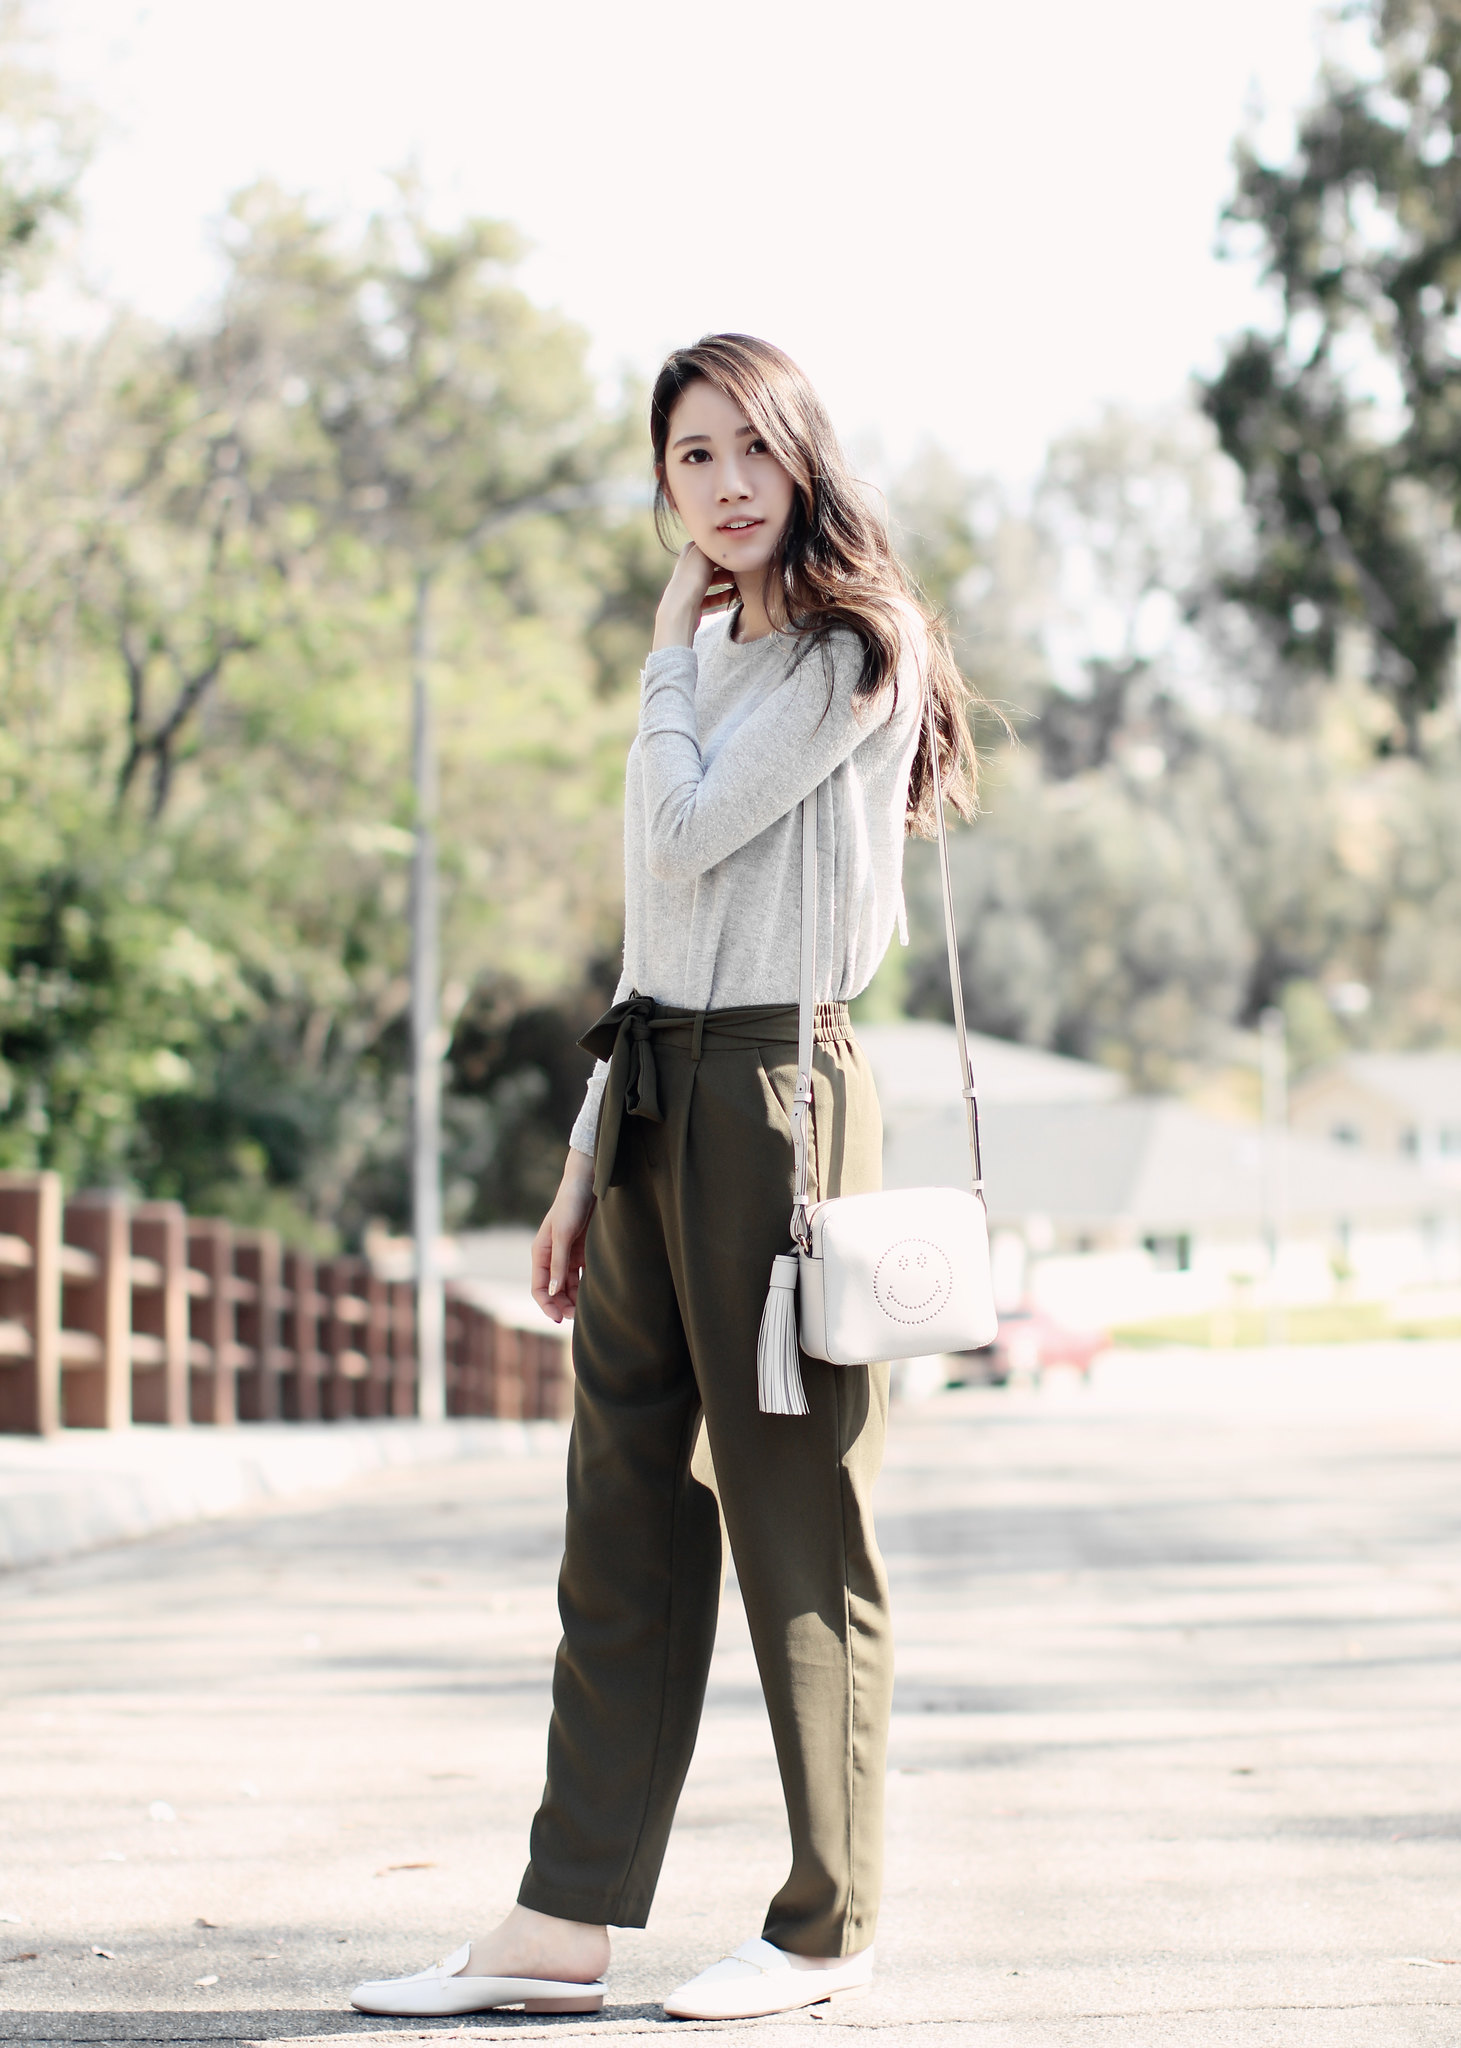 4950-ootd-fashion-style-outfitoftheday-wiwt-streetstyle-forever21-f21xme-anyahindmarch-mules-loafers-trousers-elizabeeetht-clothestoyouuu